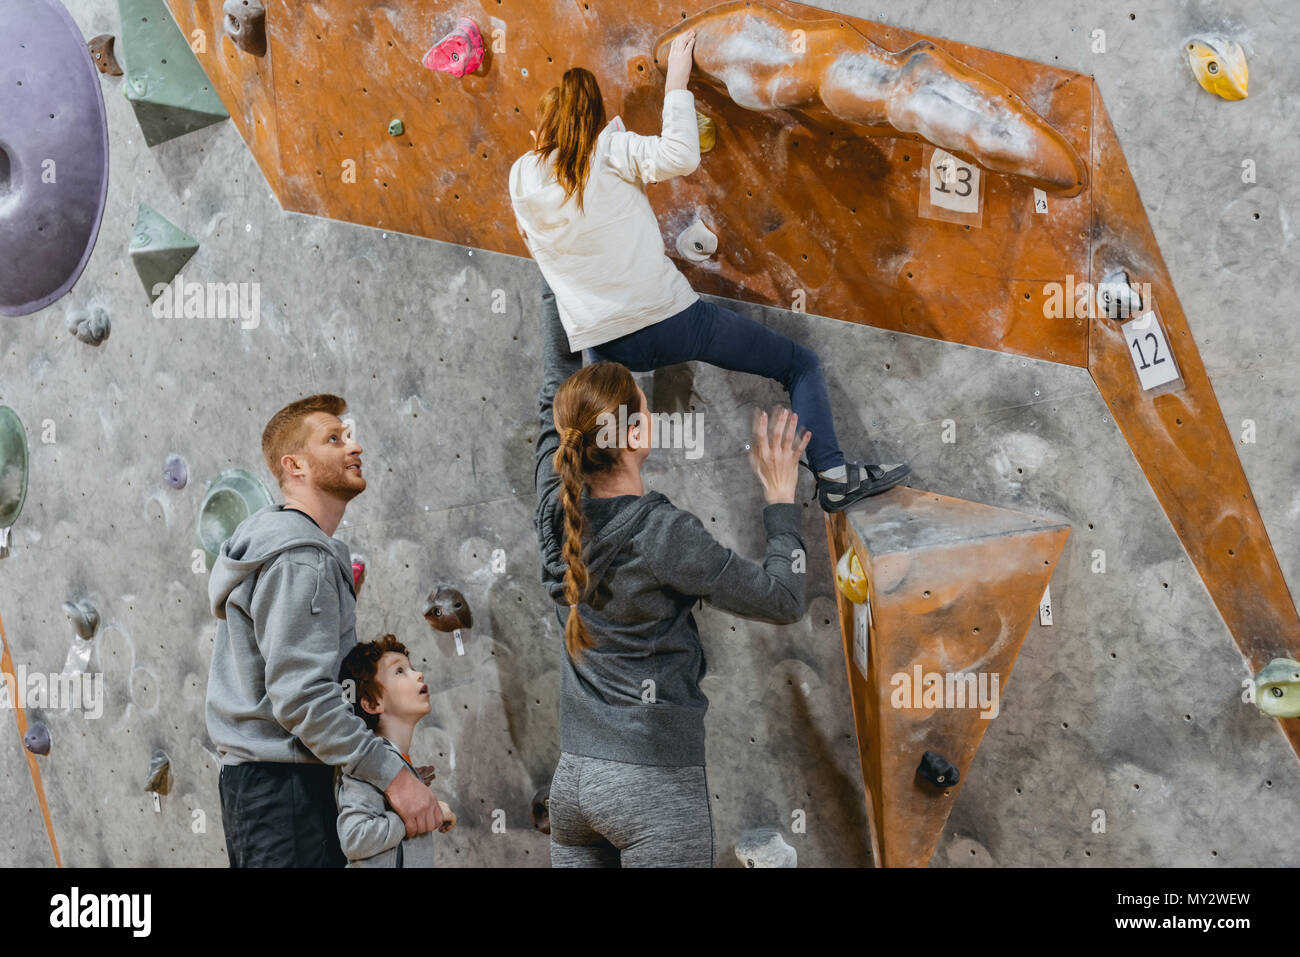 Little girl climbing a wall with grips and her mom supporting her from the back - Stock Image